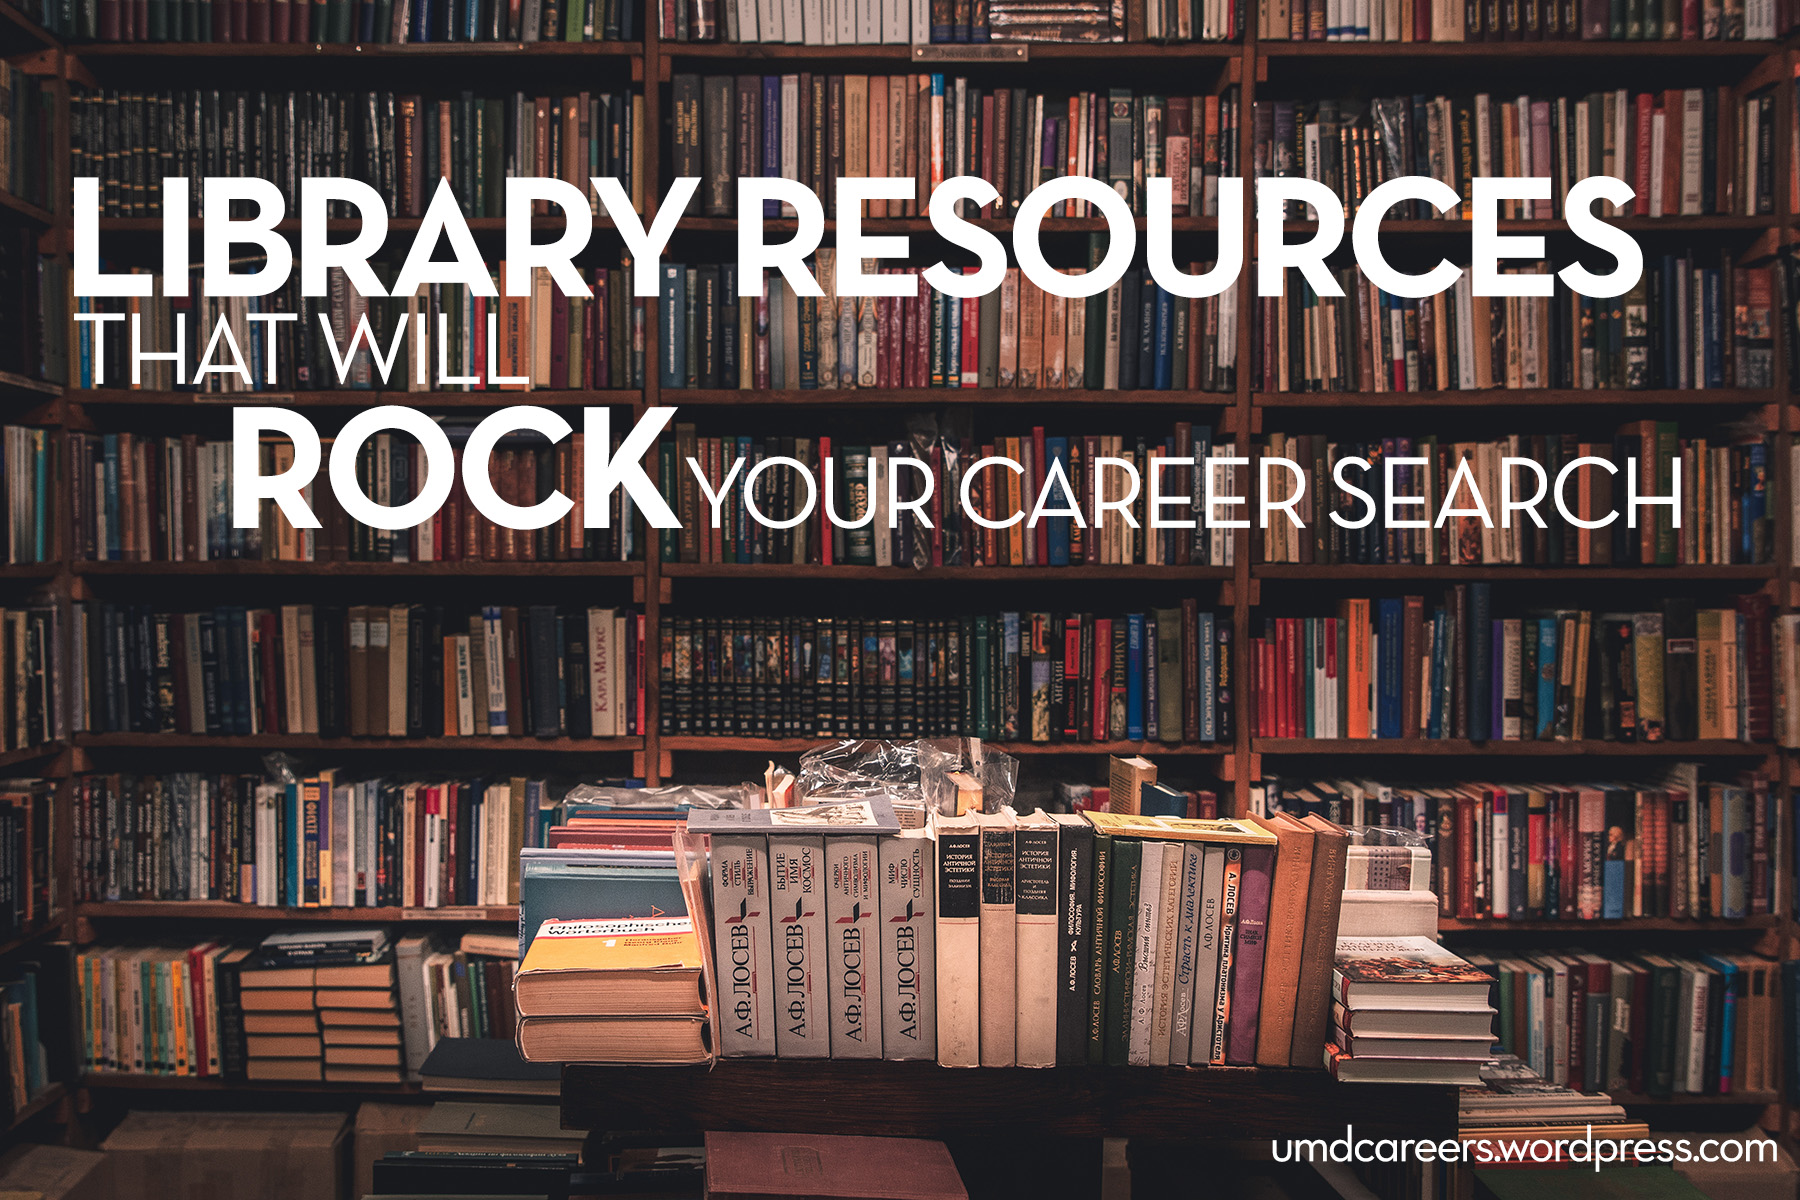 Image: wall of books shelves filled with books Text: Library resources that will ROCkKyour career search